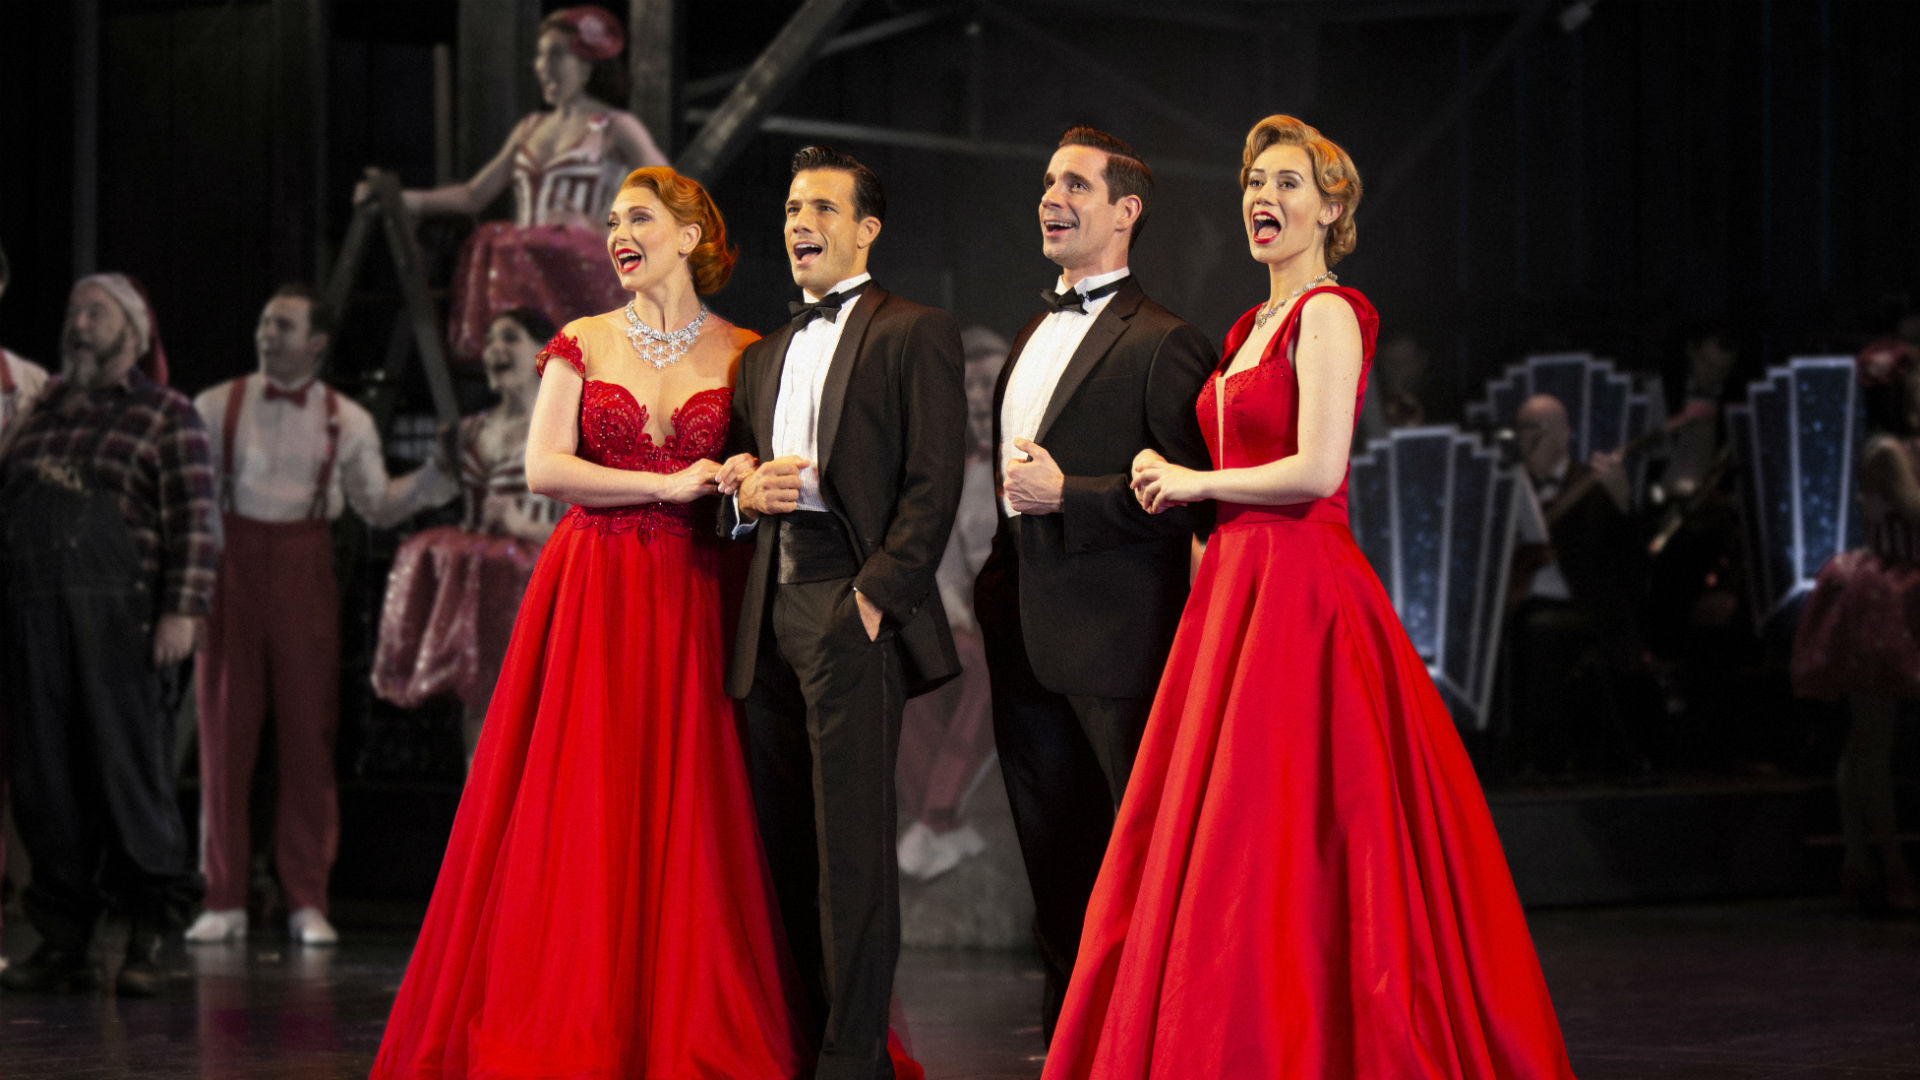 Two men in tuxedos stand arm-in-arm with two girls in red ballgowns. All four are singing.